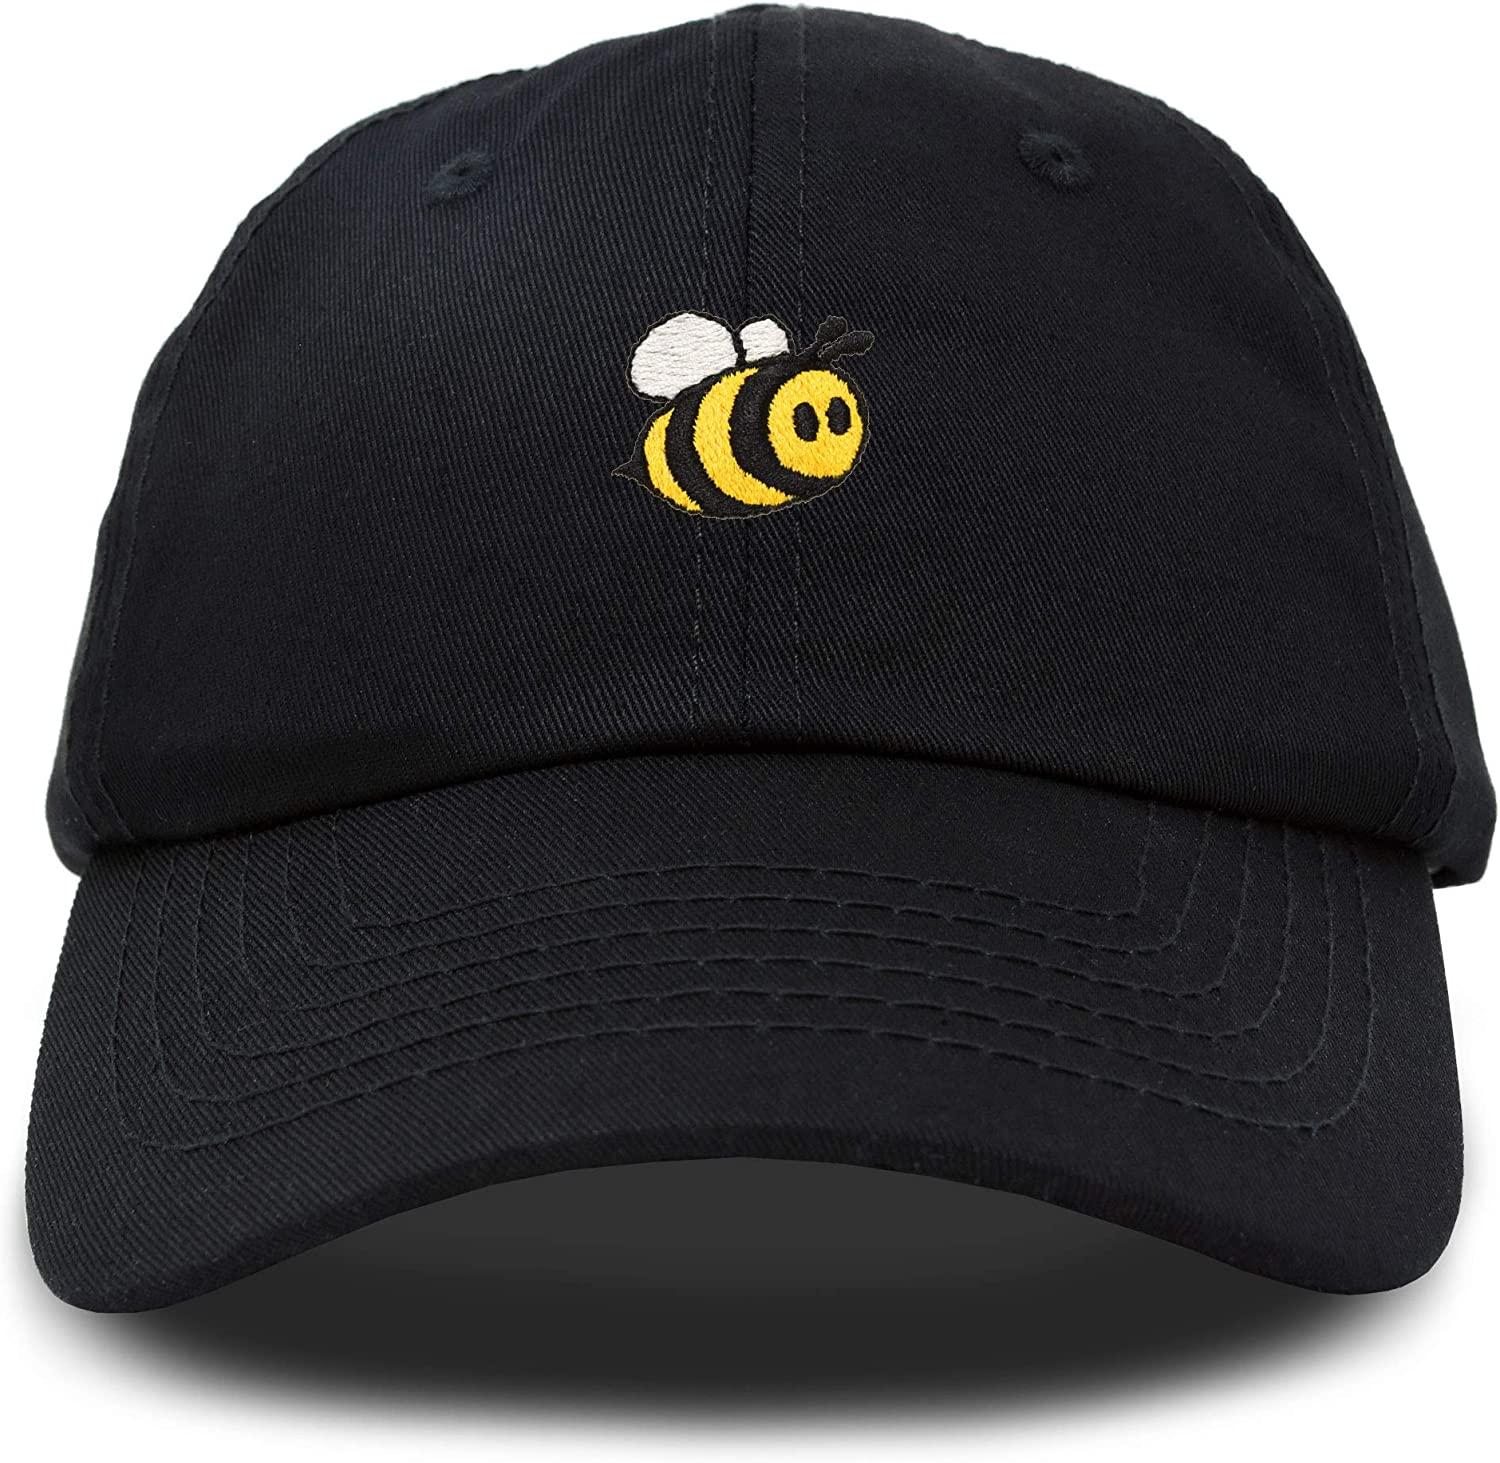 DALIX Bumble Bee Regular store Baseball Cap Embroidered List price Womens Girls Dad Hat